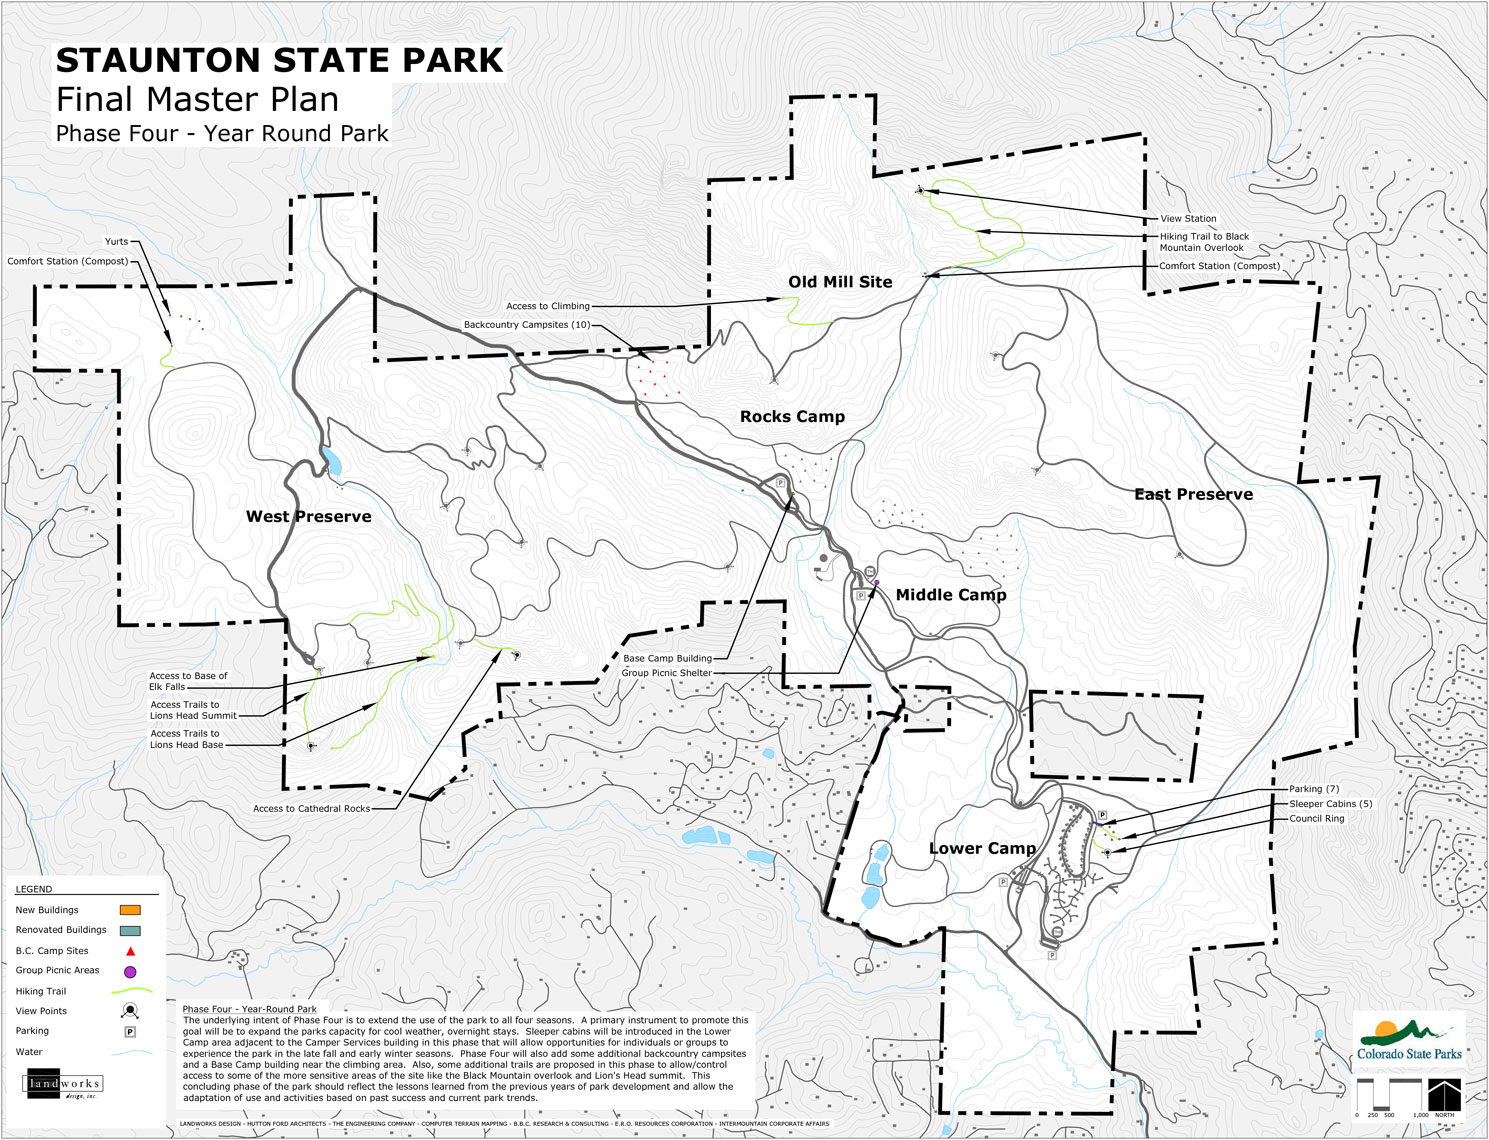 LWD-Color_Phase 4_36x48.mcl (P:\0722-Staunton State Park\CAD\Final MP\LWD-Color.dwg)